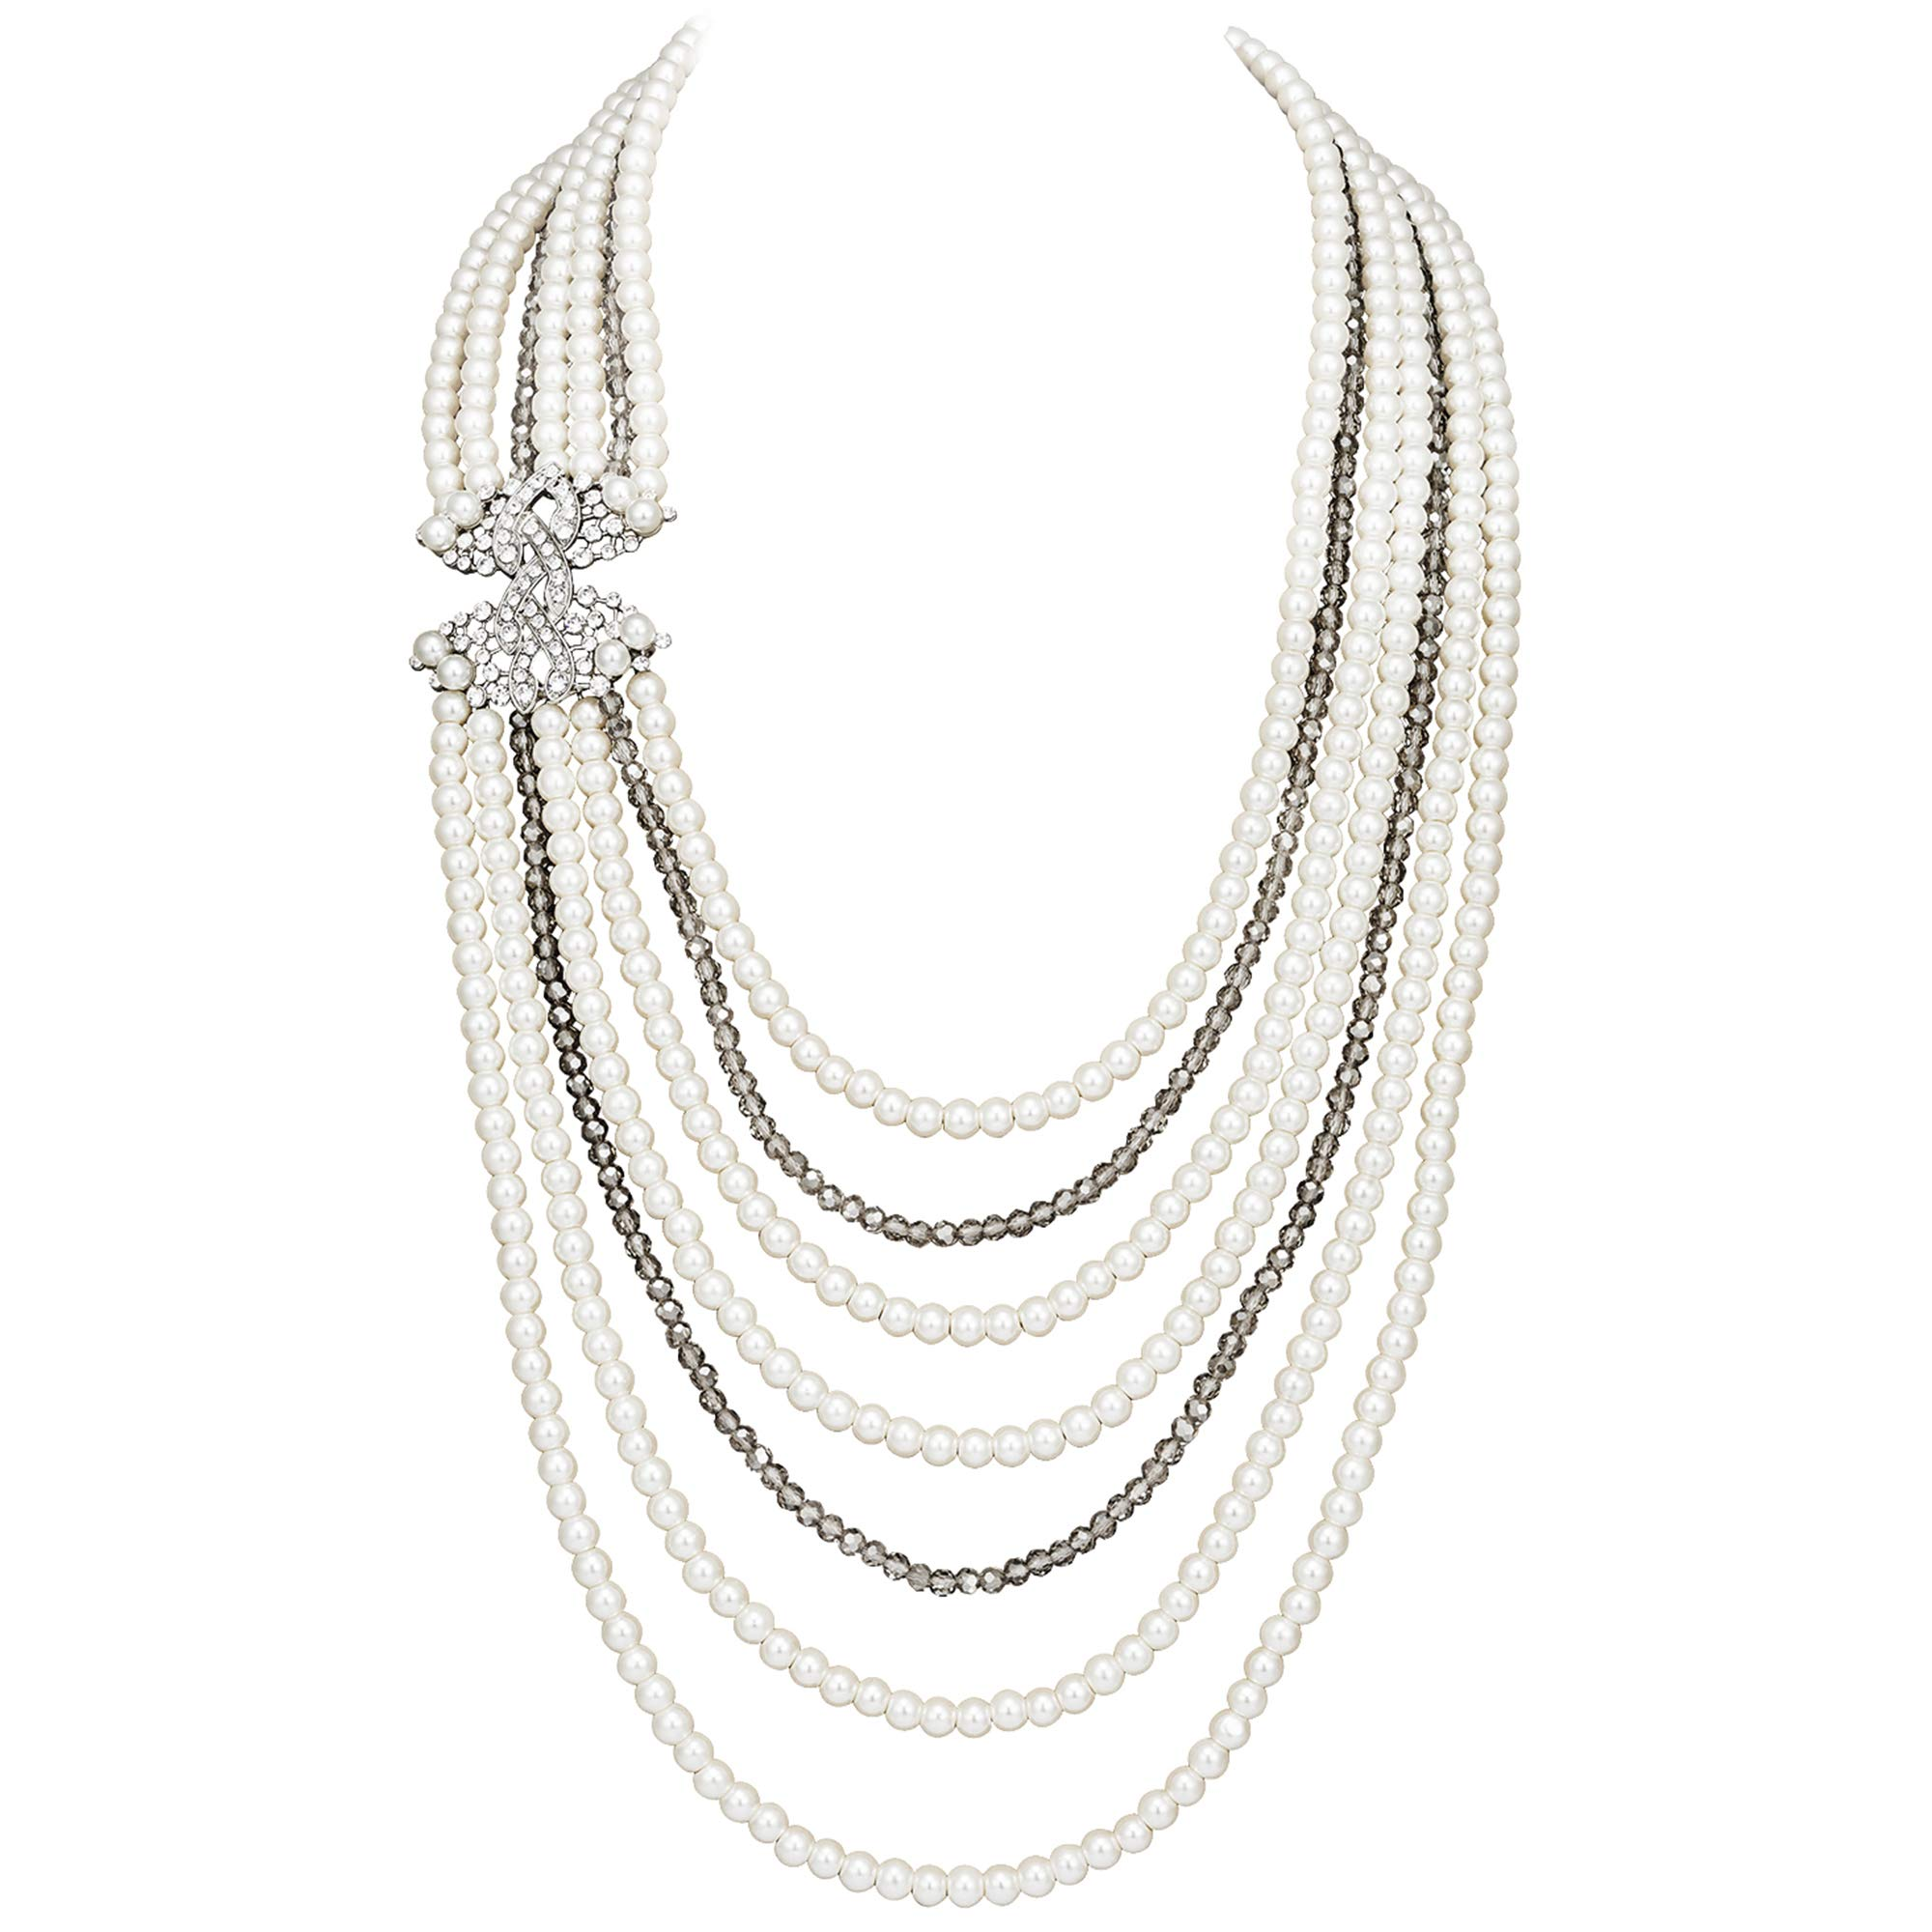 Coucoland Audrey Hepburn Inspired Pearl Necklace Earrings Set 1920s Gatsby Imitation Pearls Necklace with Crystal Brooch Bridal Pearl Jewelry Sets (White) by Coucoland